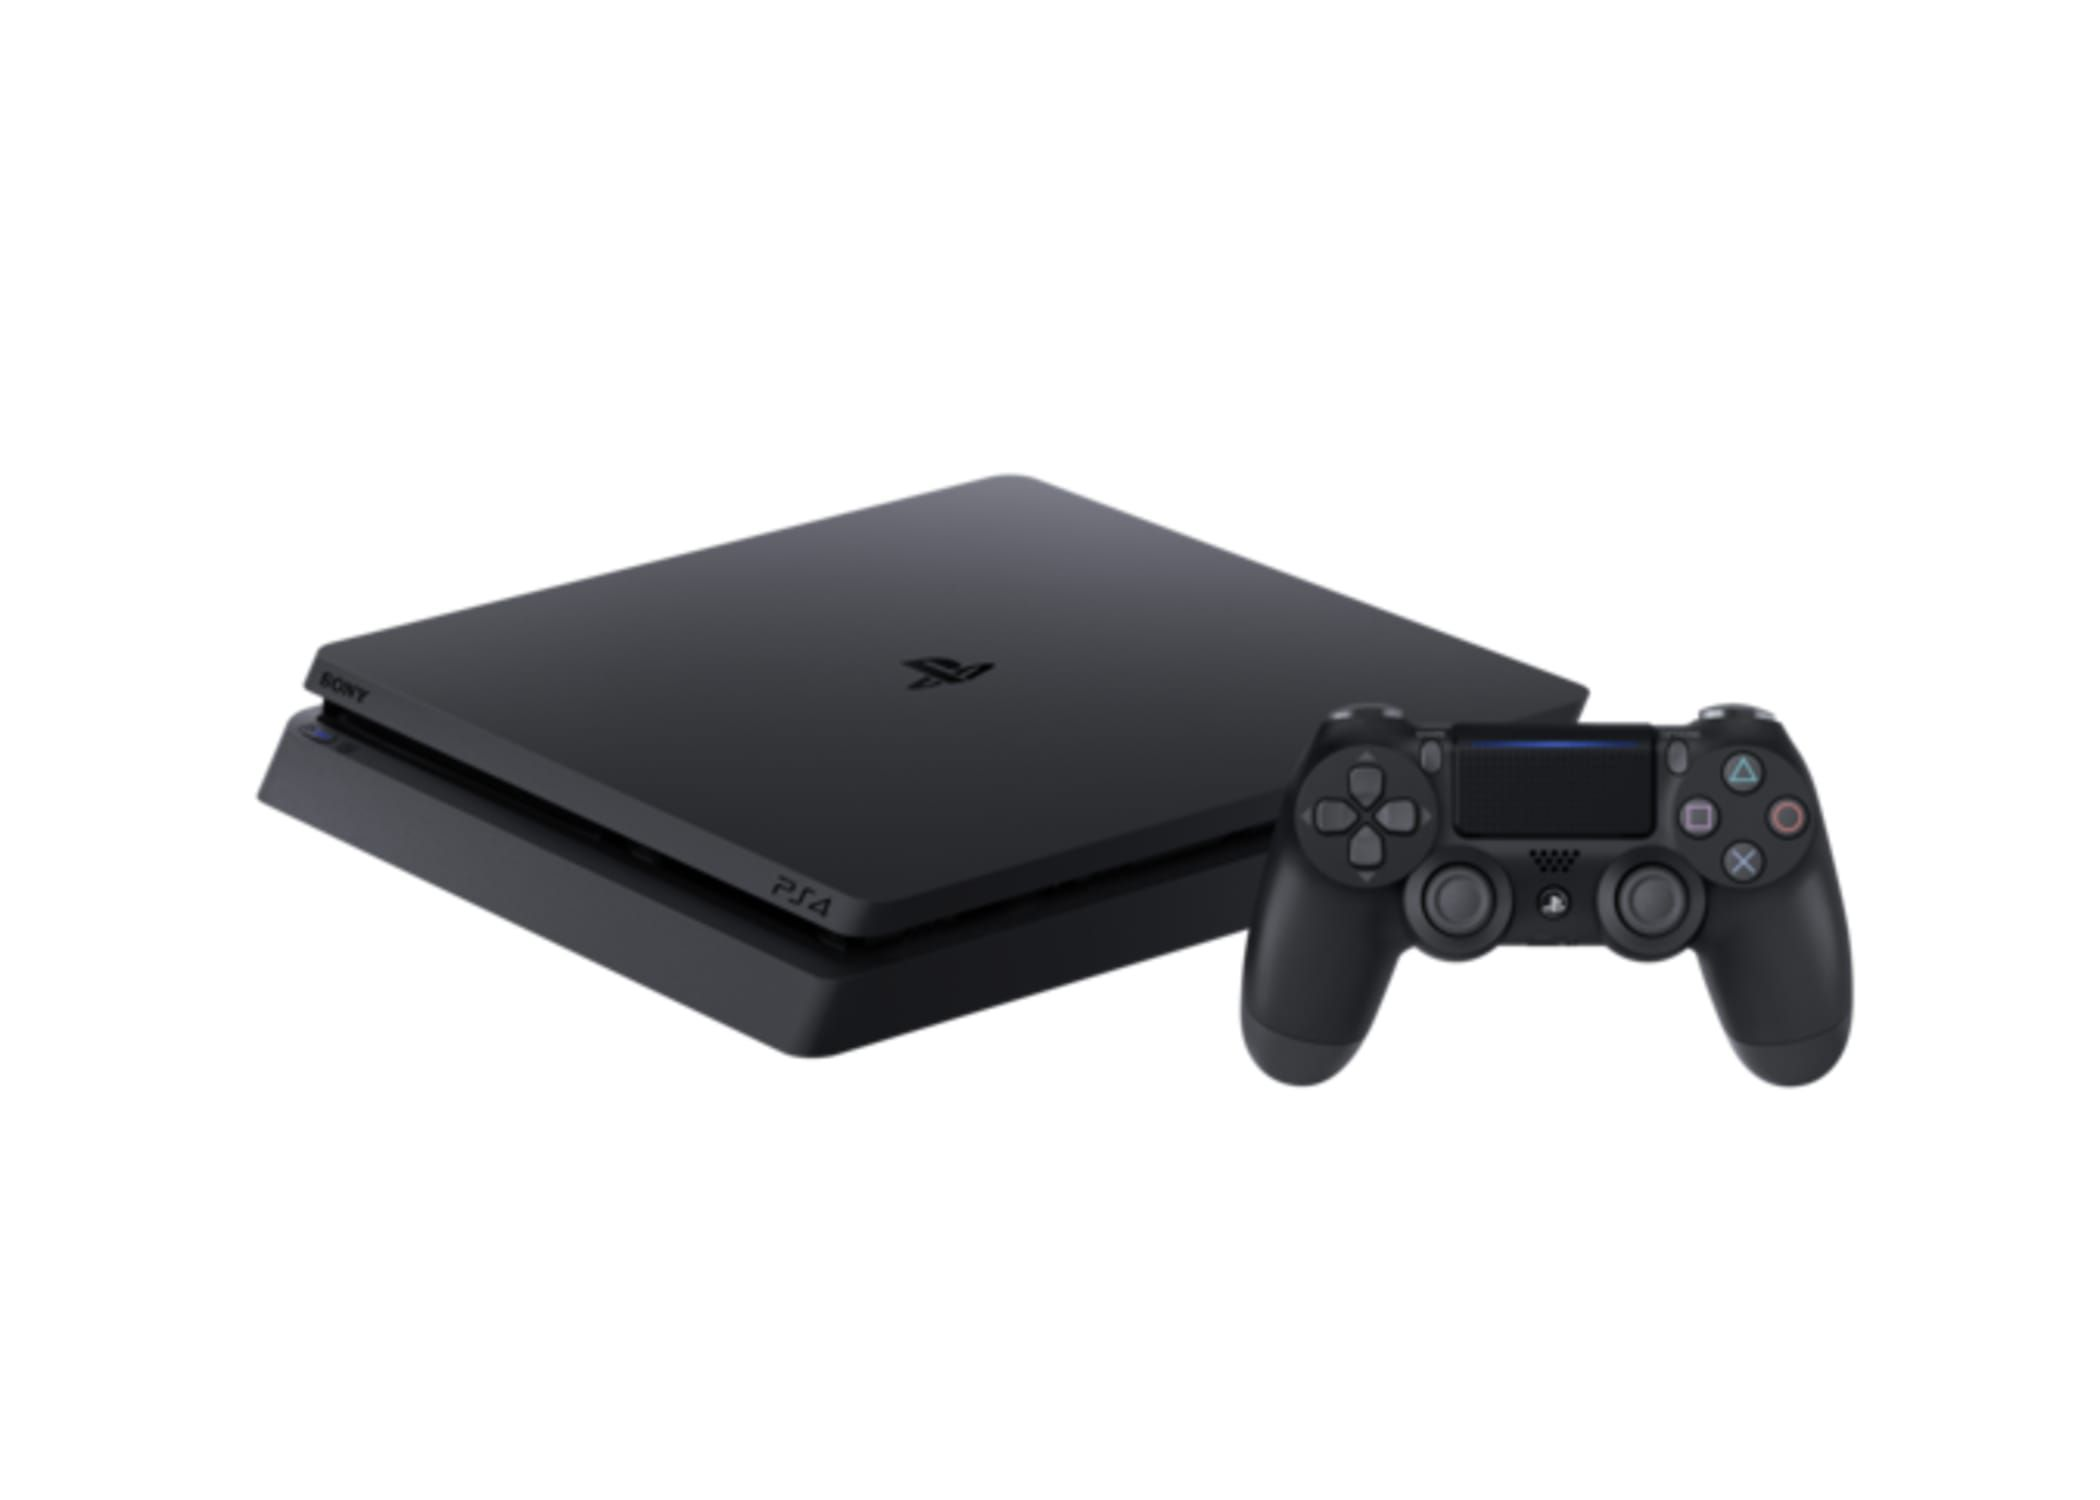 Buy Playstation 4 1tb Game Affiliate Ad Playstation Buy Game Tb Sony Playstation Ps4 Slim Playstation